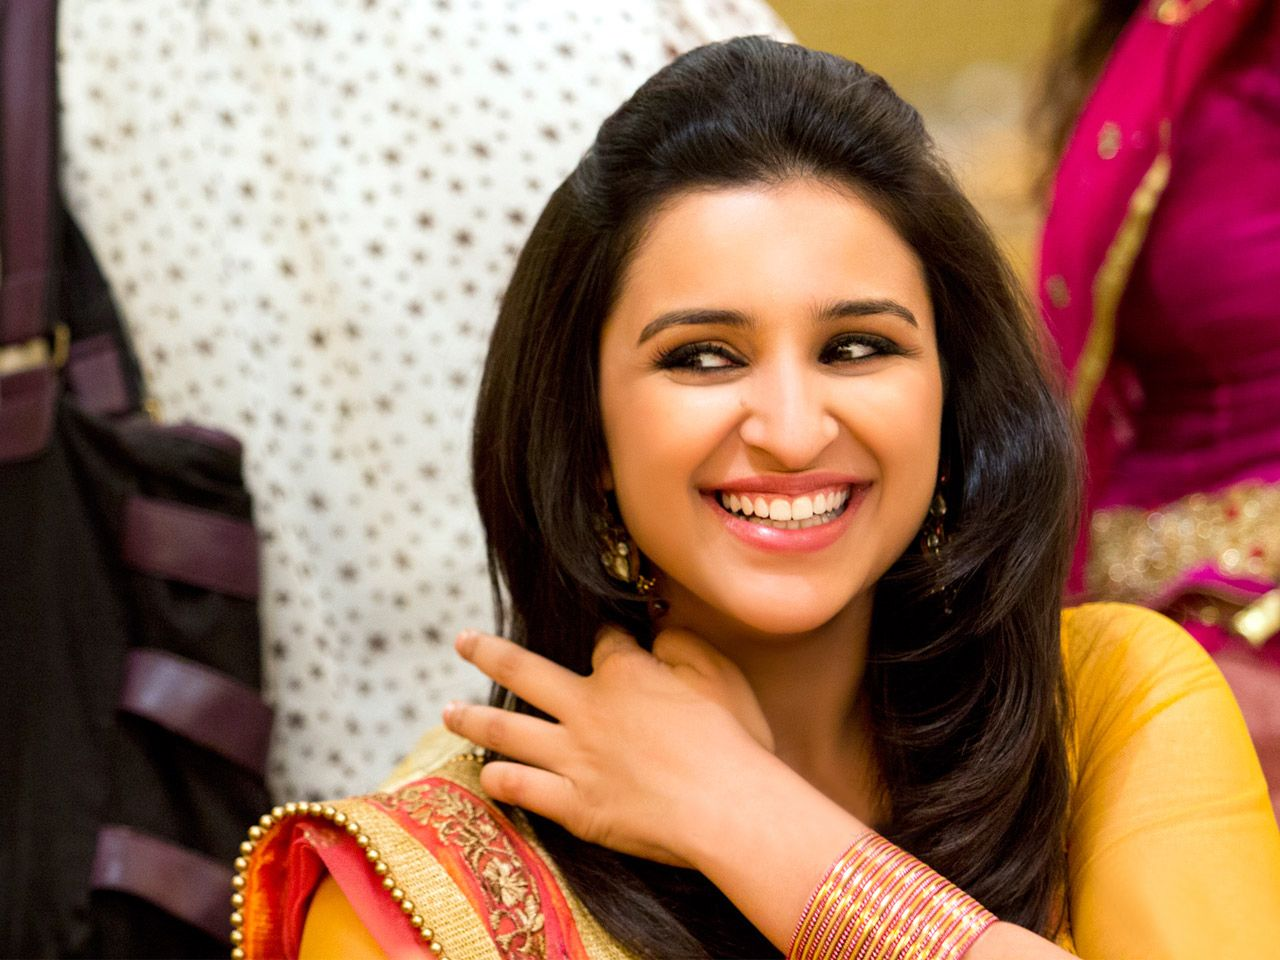 Gorgeous Parineeti Chopra Beautiful Smile Parineeti Chopranewhd